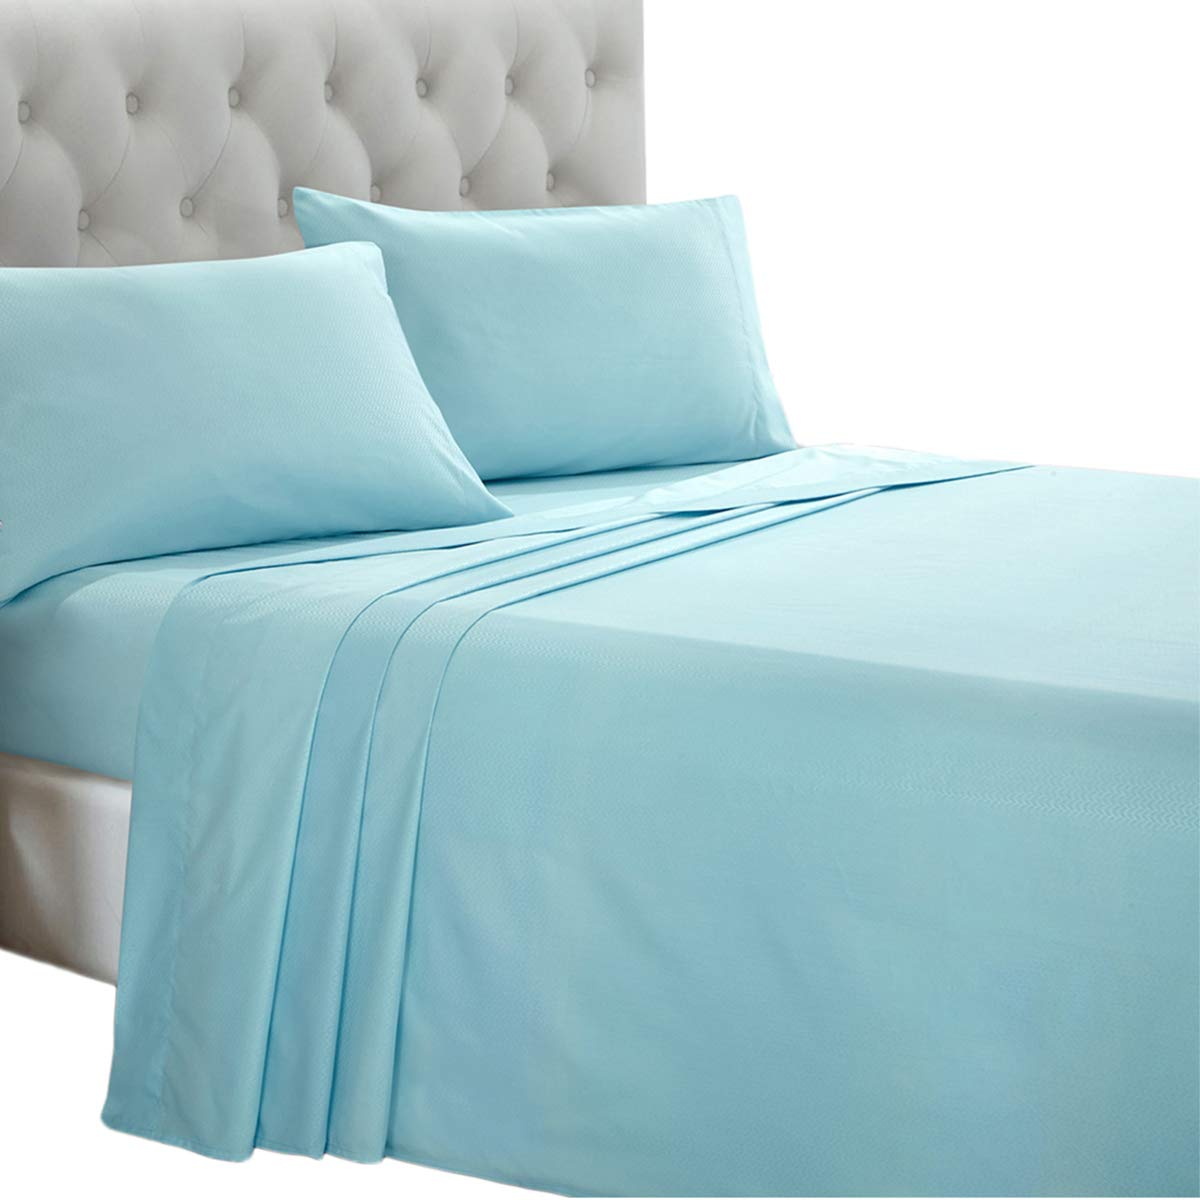 HollyHOME Embossed Sheets, 3 Piece Hotel Collection Soft Brushed Microfiber Bed Sheet Set, Twin, Teal